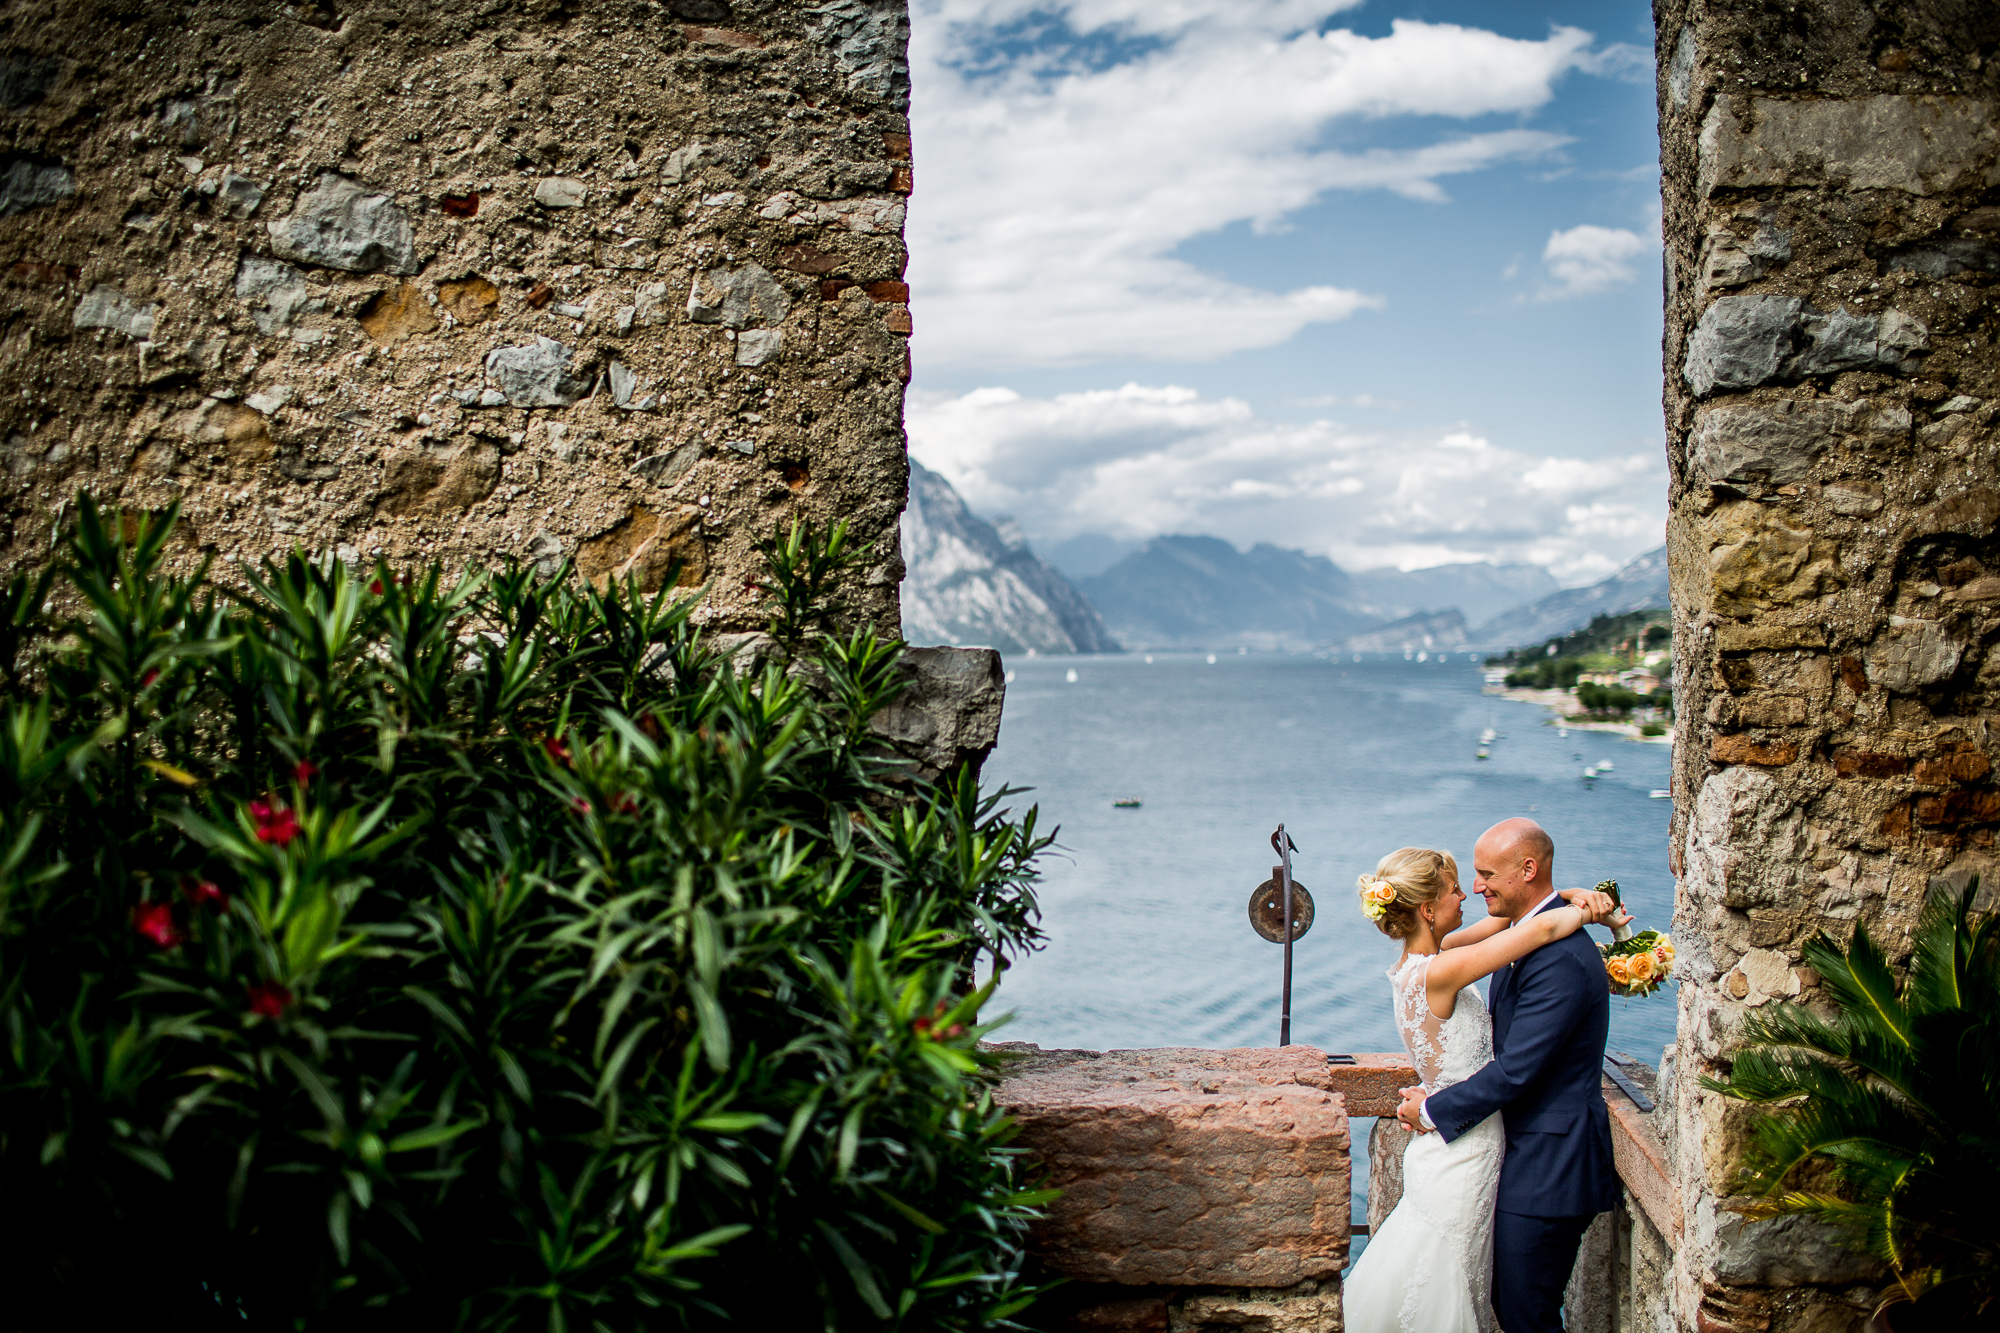 Hochzeit, portrait, Gardasee, Hochzeitspaar, view, Ausblick, castello, malcesine, see, sport, in love, happy, married, shooting, hochzeitsfotos,